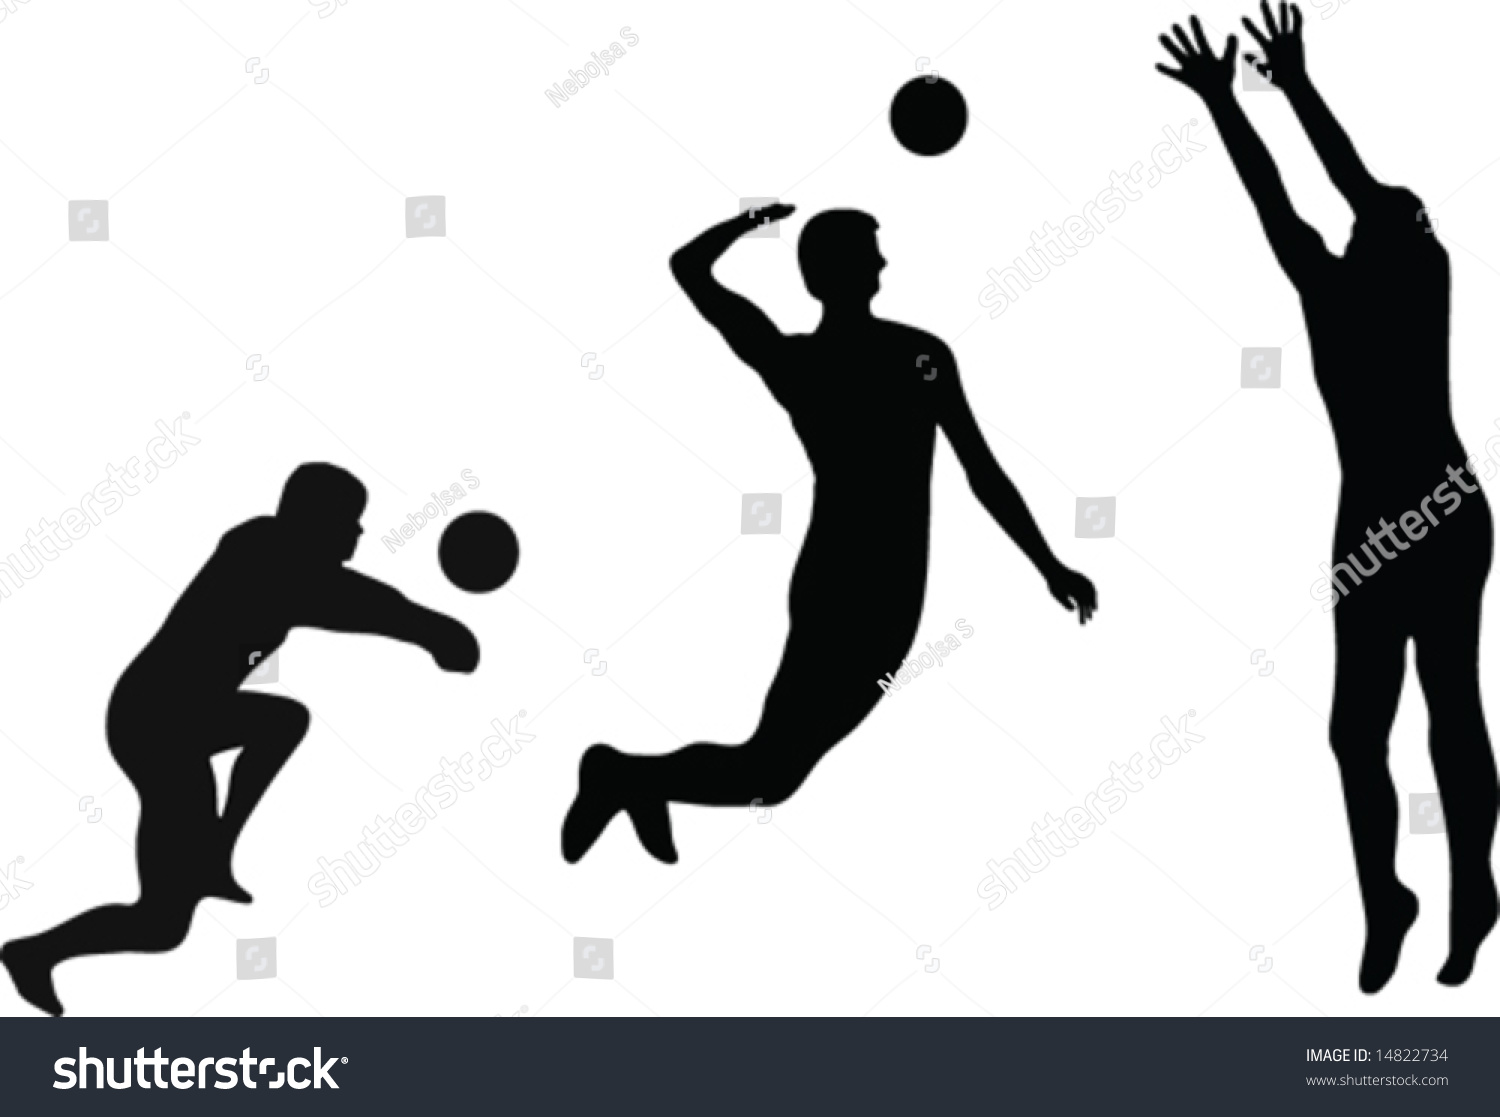 Illustration Abstract Volleyball Player Silhouette: Volleyball Player Silhouettes